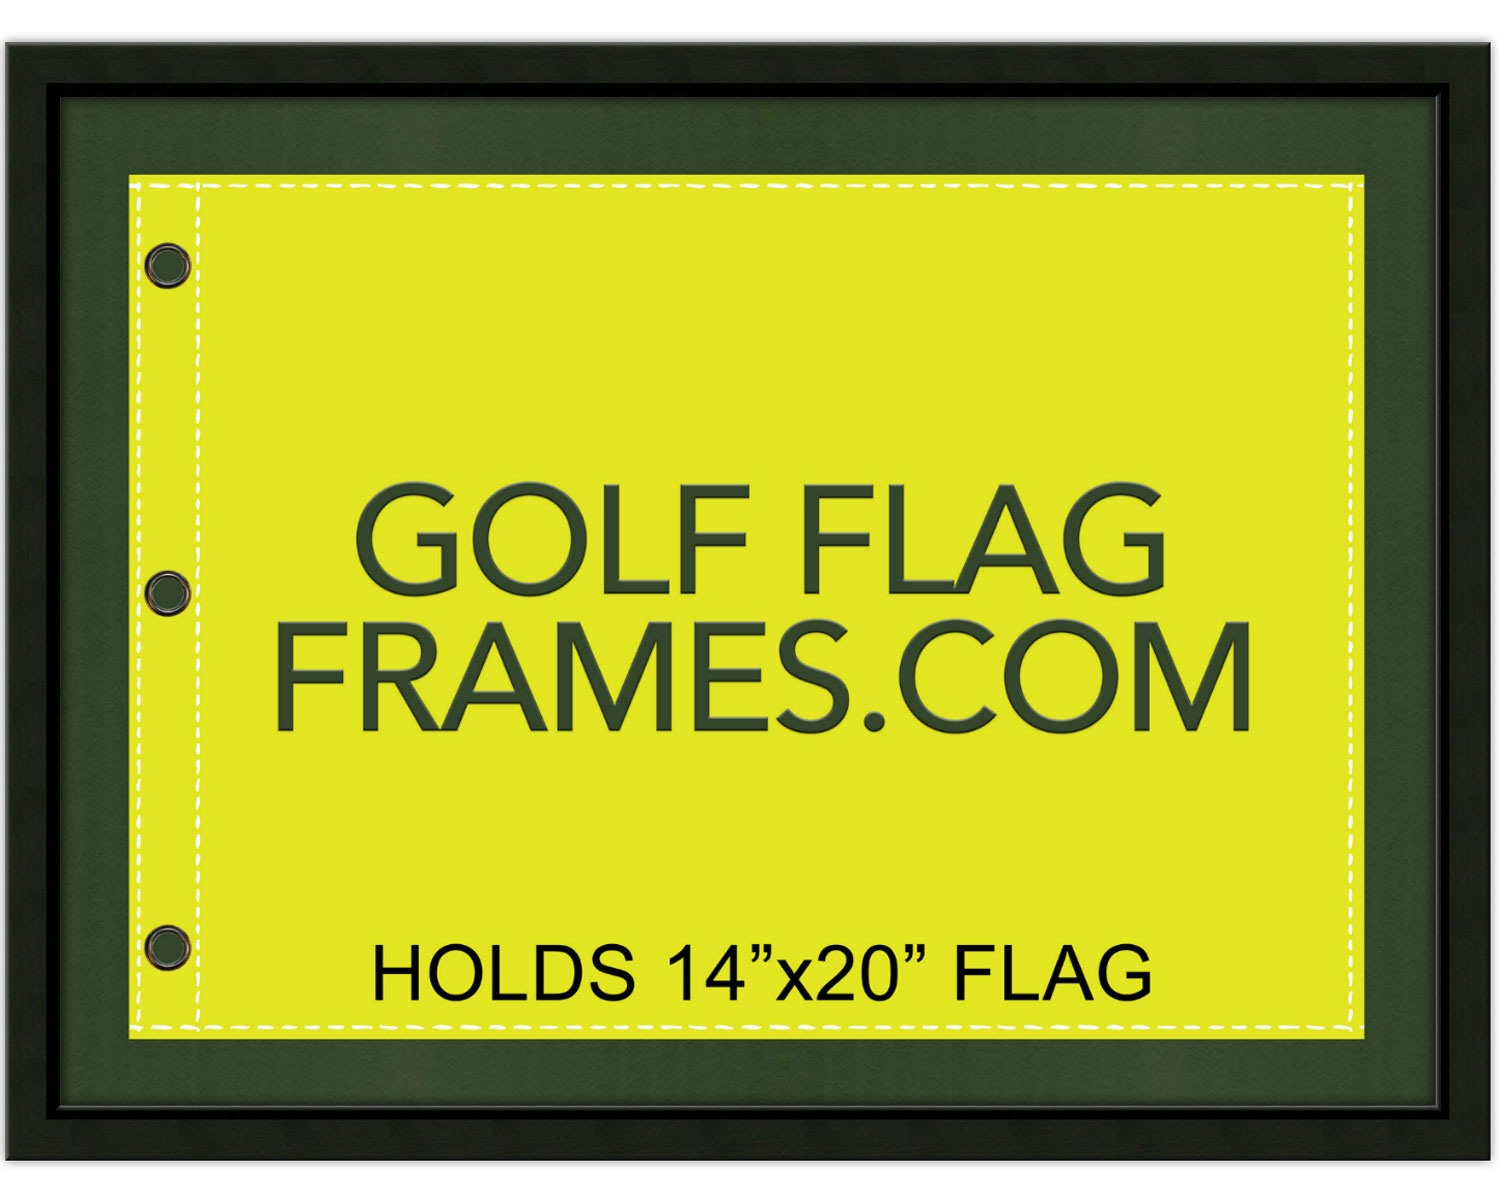 17 215 23 Black Frame To Hold 14 215 20 Golf Flag Moulding Blk